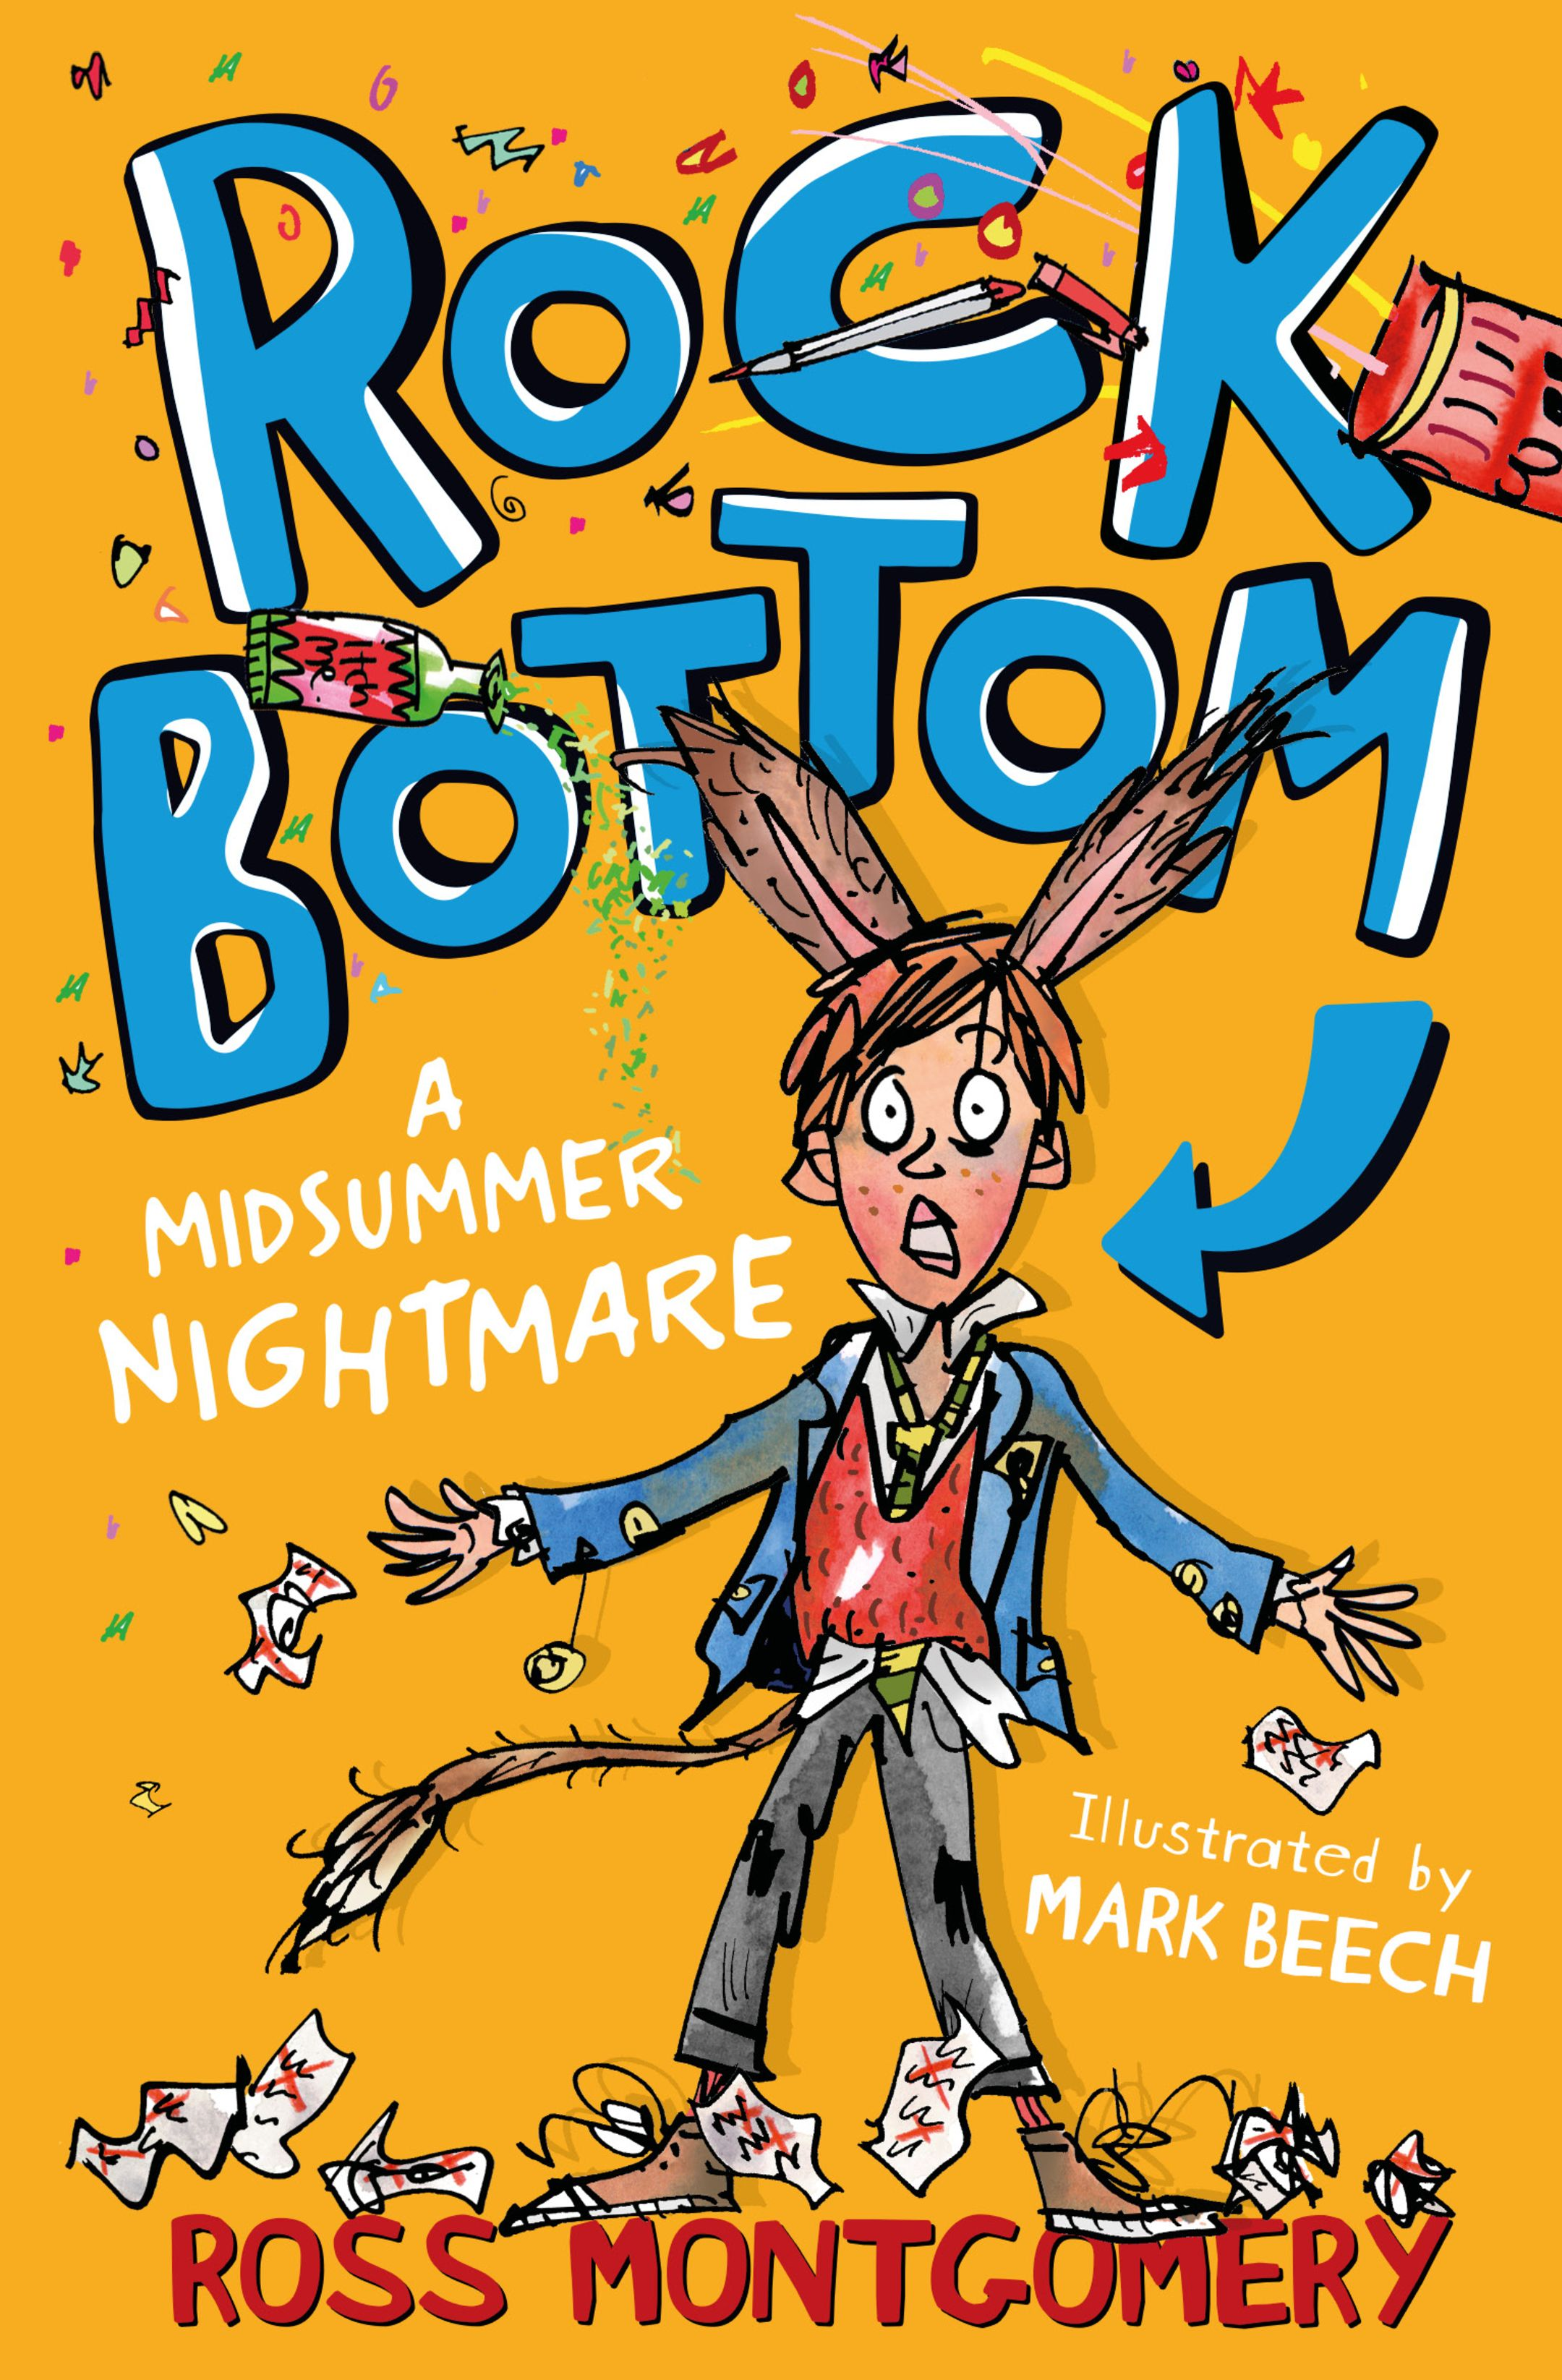 The book cover image of Rock Bottom by Ross Montgomery